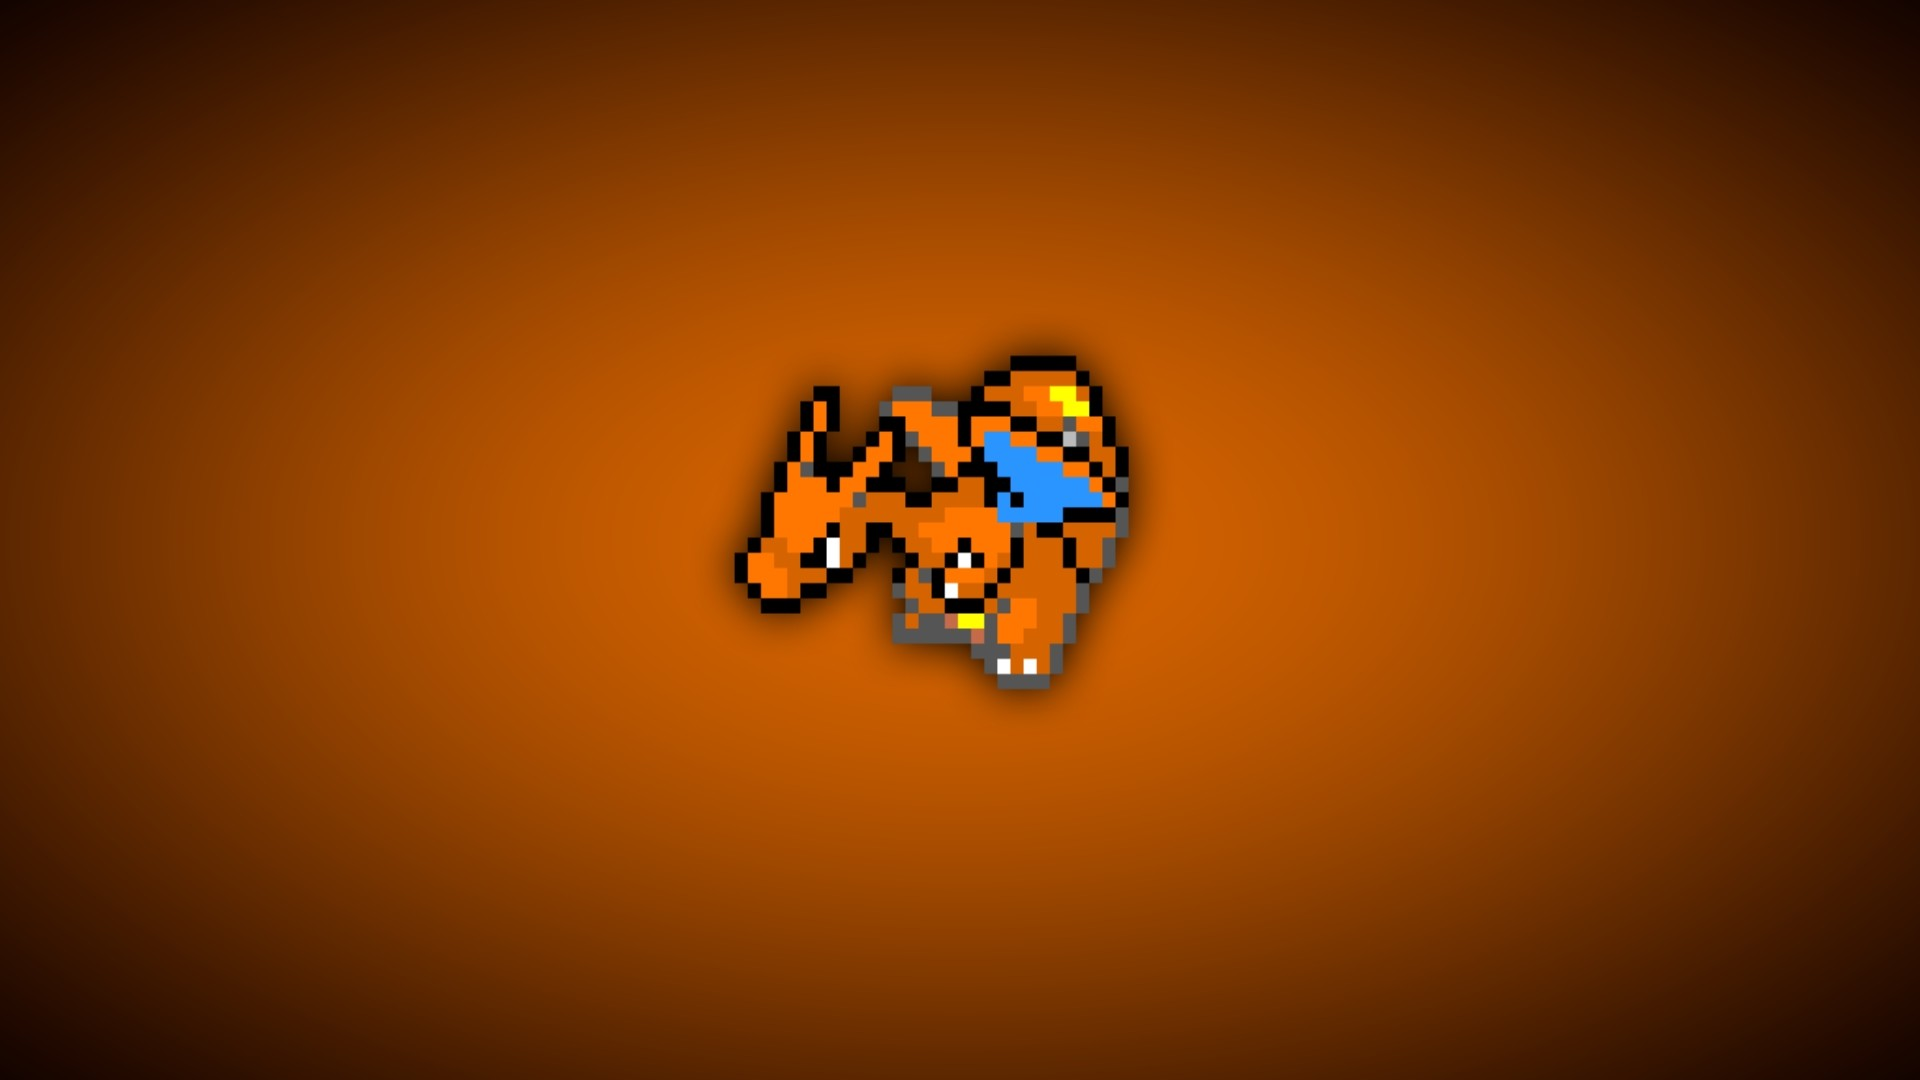 Charizard Backgrounds – Wallpaper Cave | Images Wallpapers | Pinterest |  Digimon, Wallpaper and Hd wallpaper